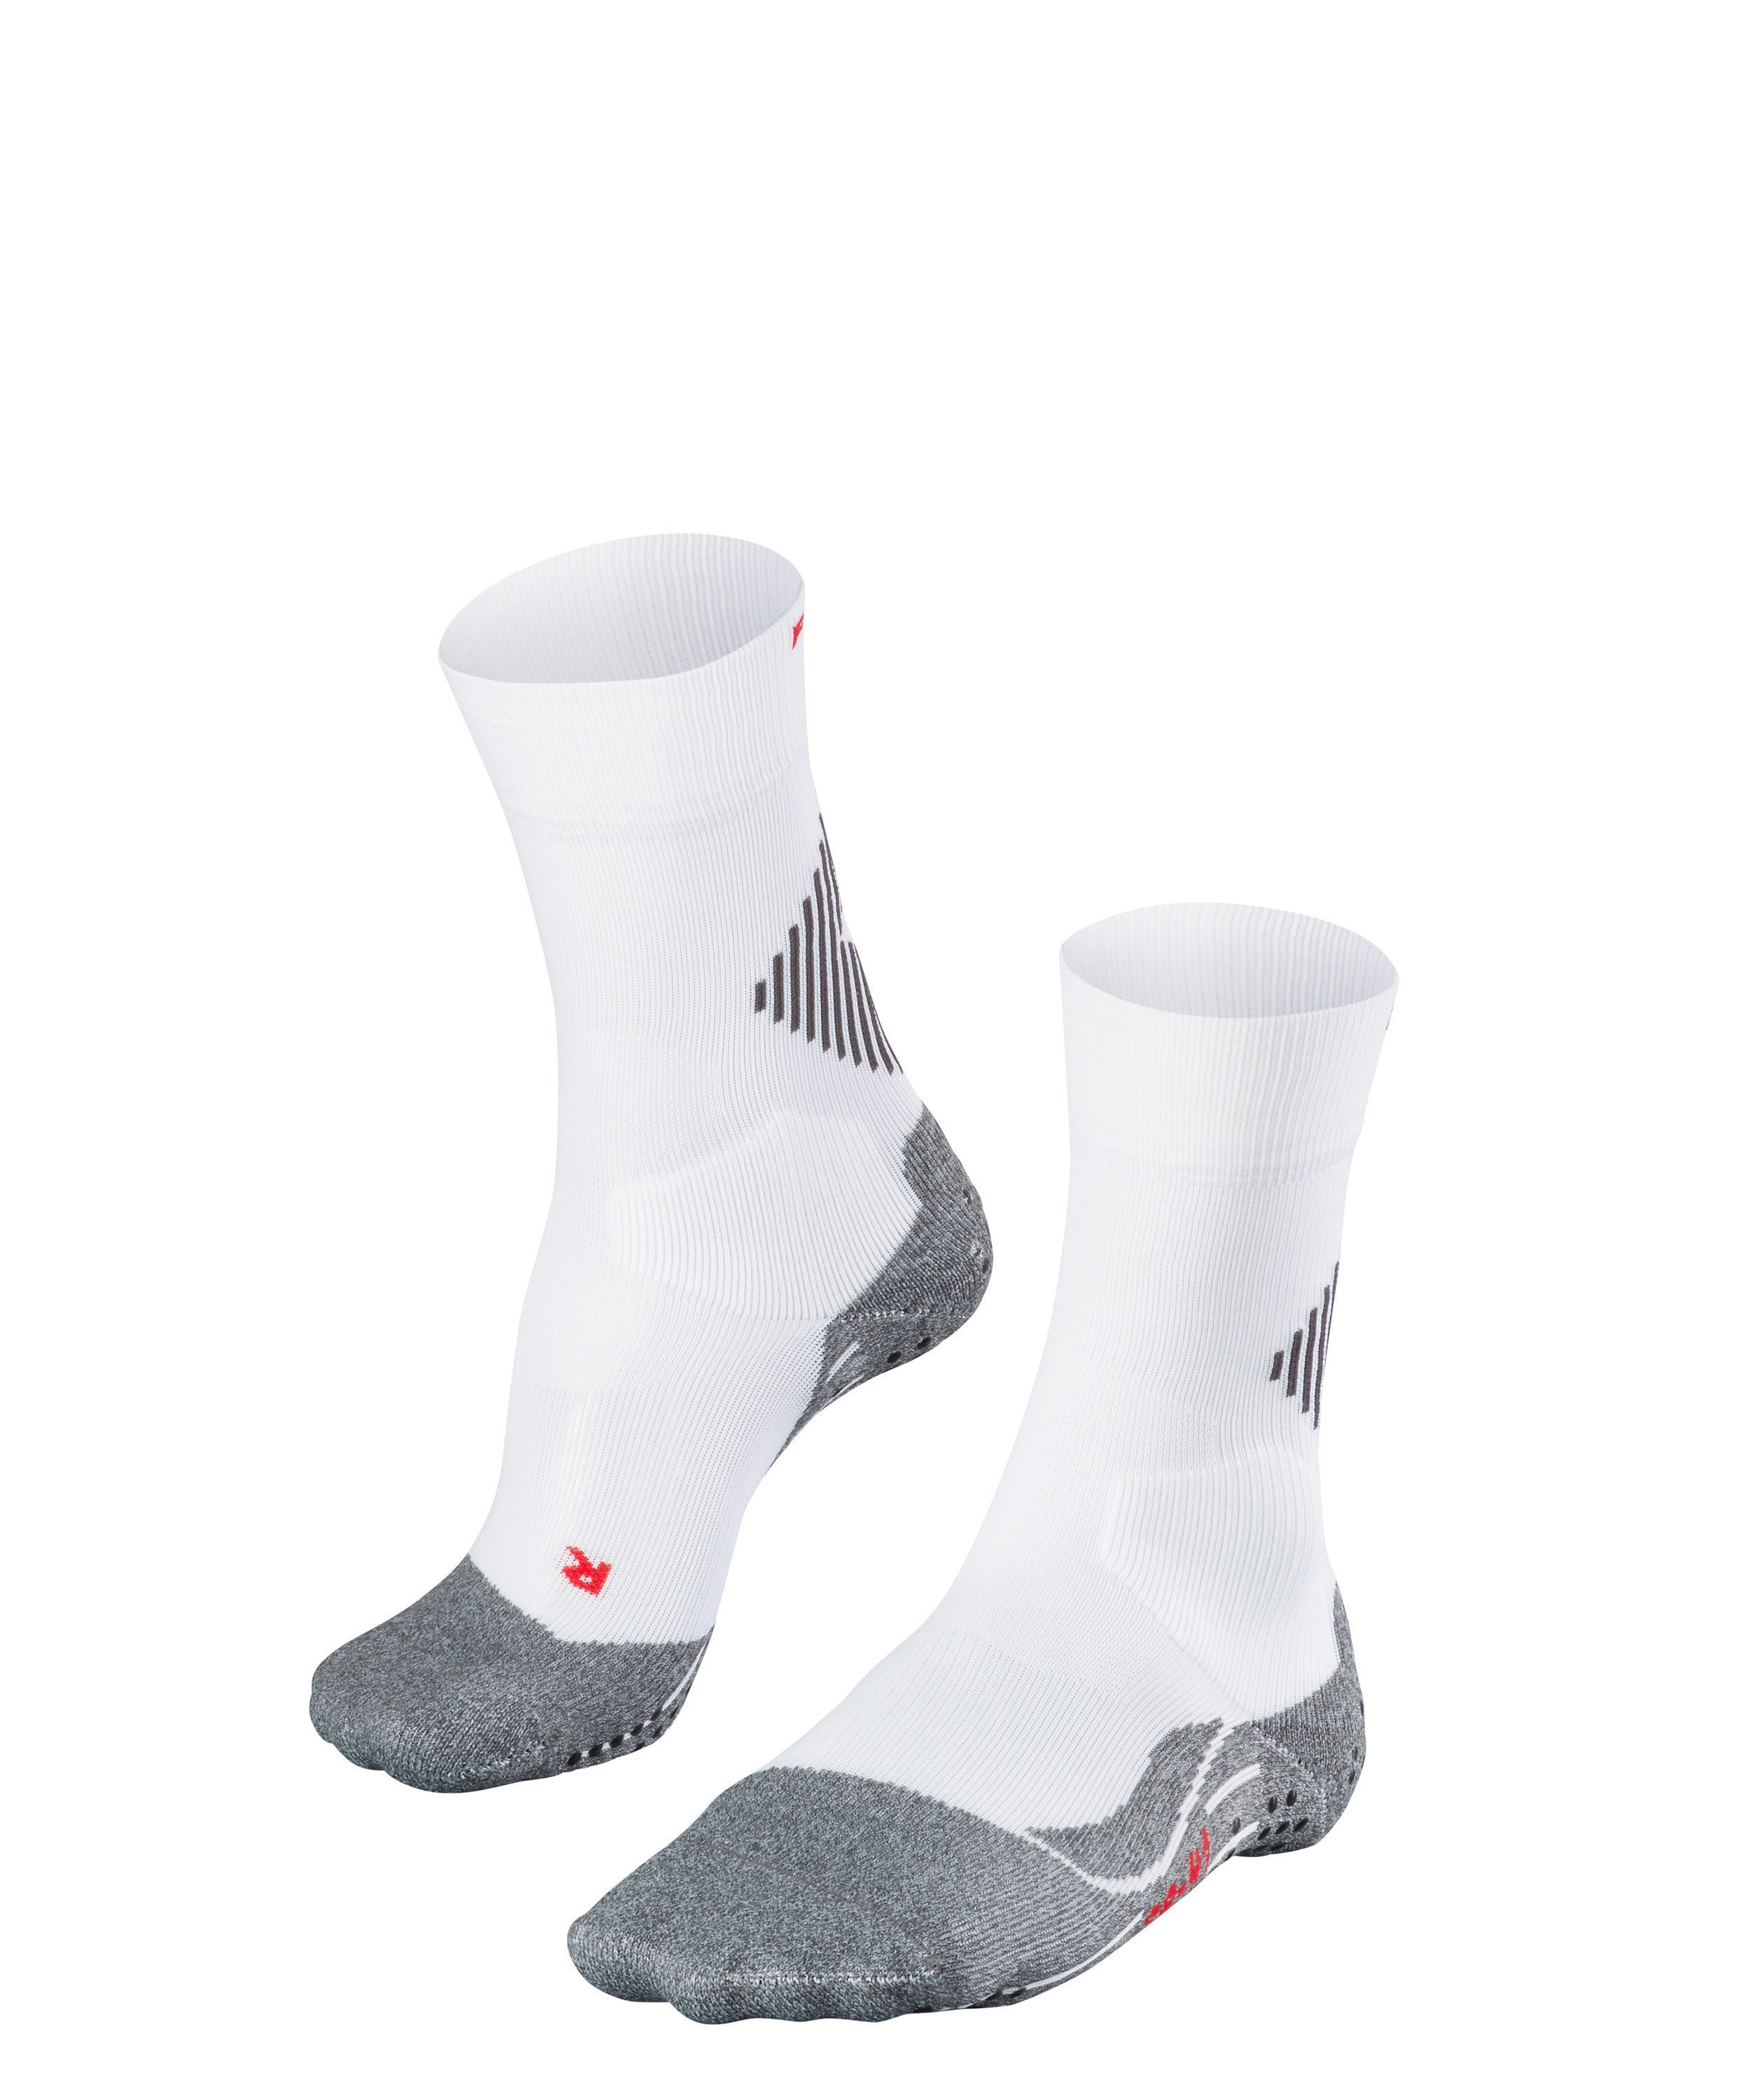 Chaussette stabilisante 4 grips